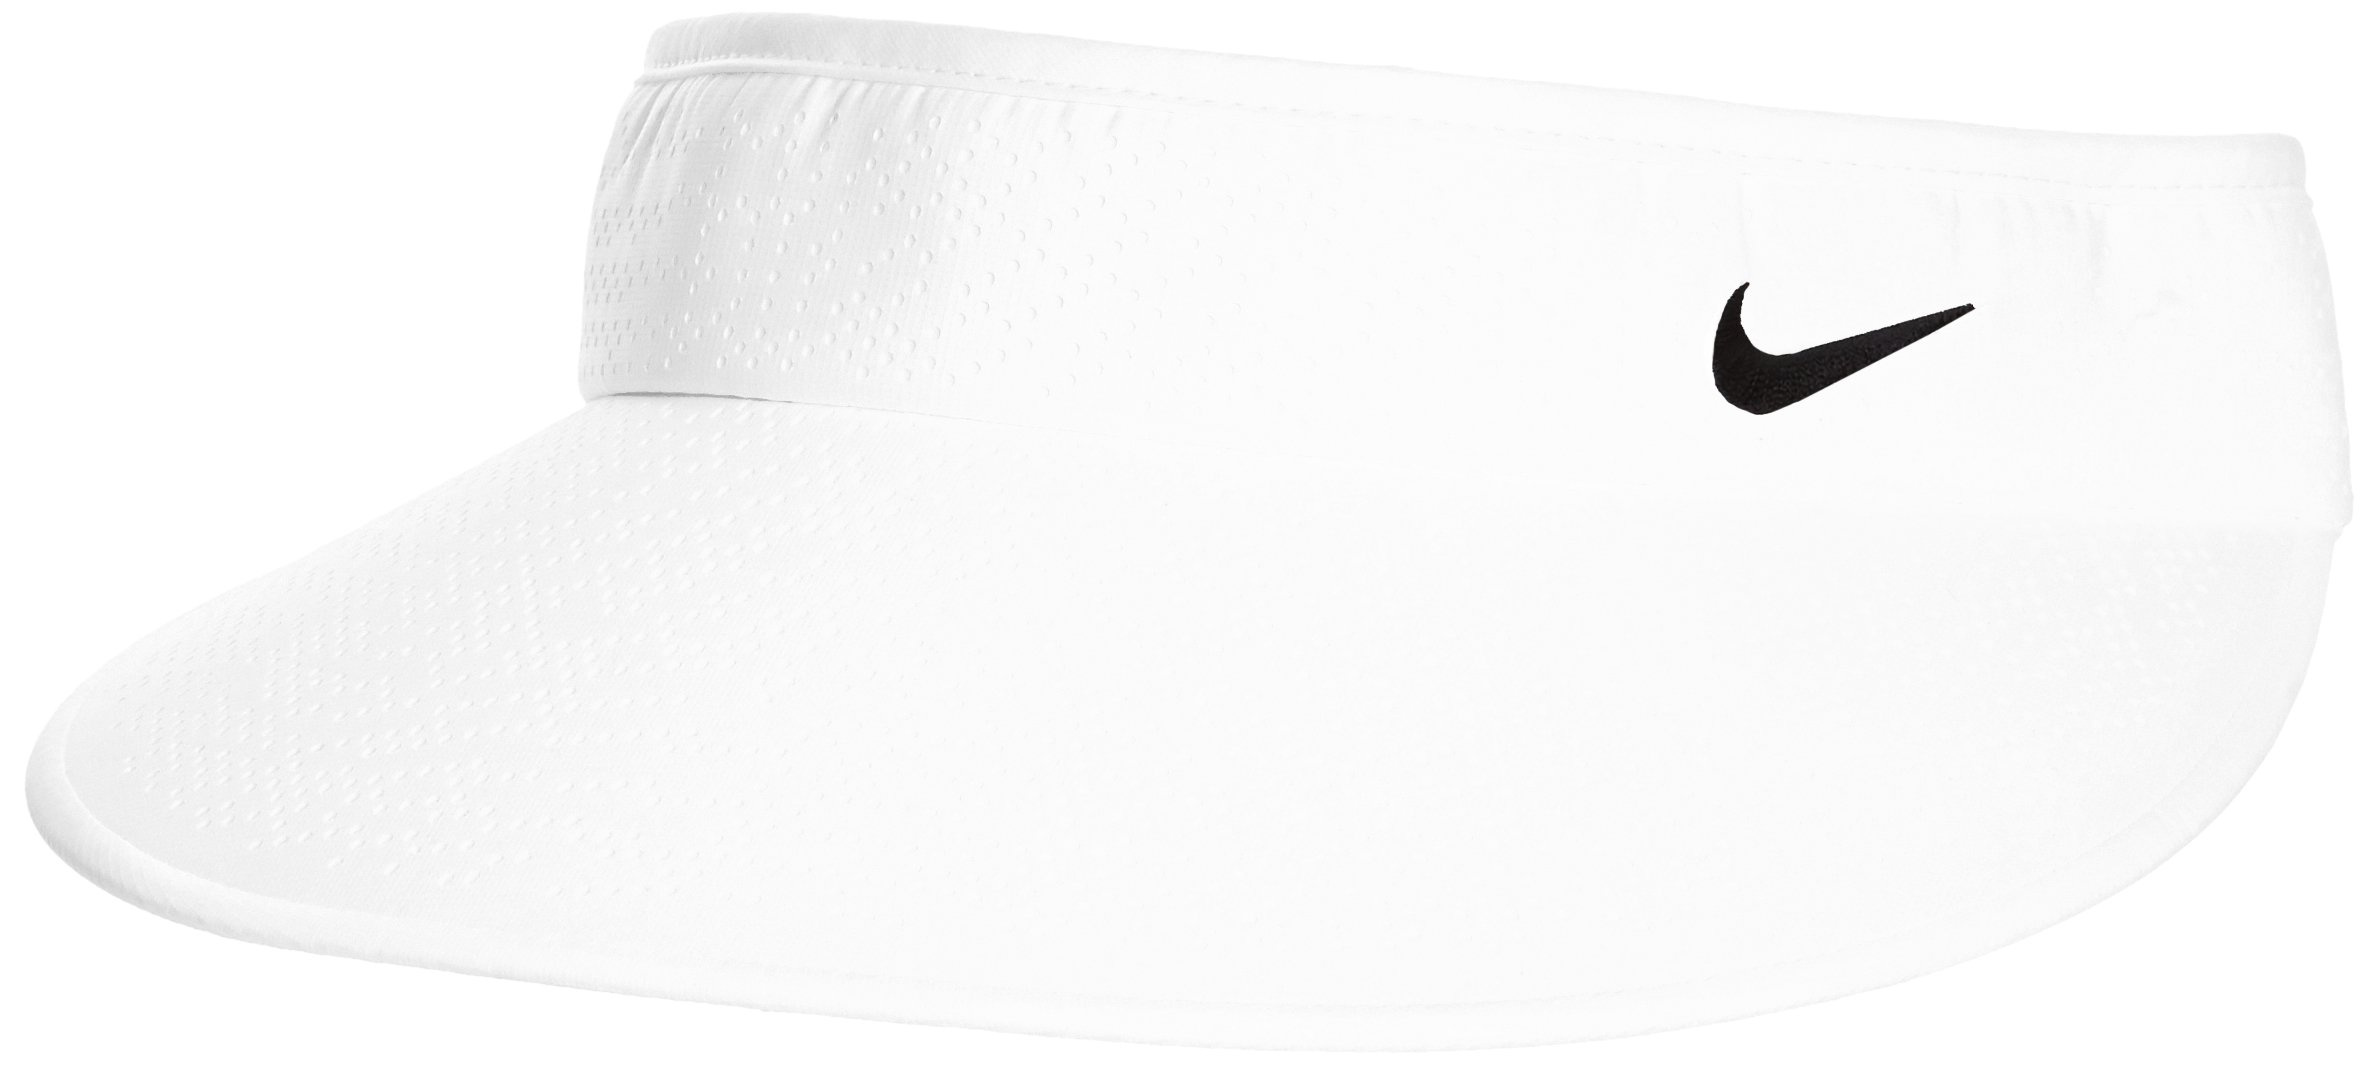 ab616327ed927e Amazon.com: Nike Golf Closeout Women's Big Bill 2.0 Adjustable Visors  742710 (White/Black): Clothing